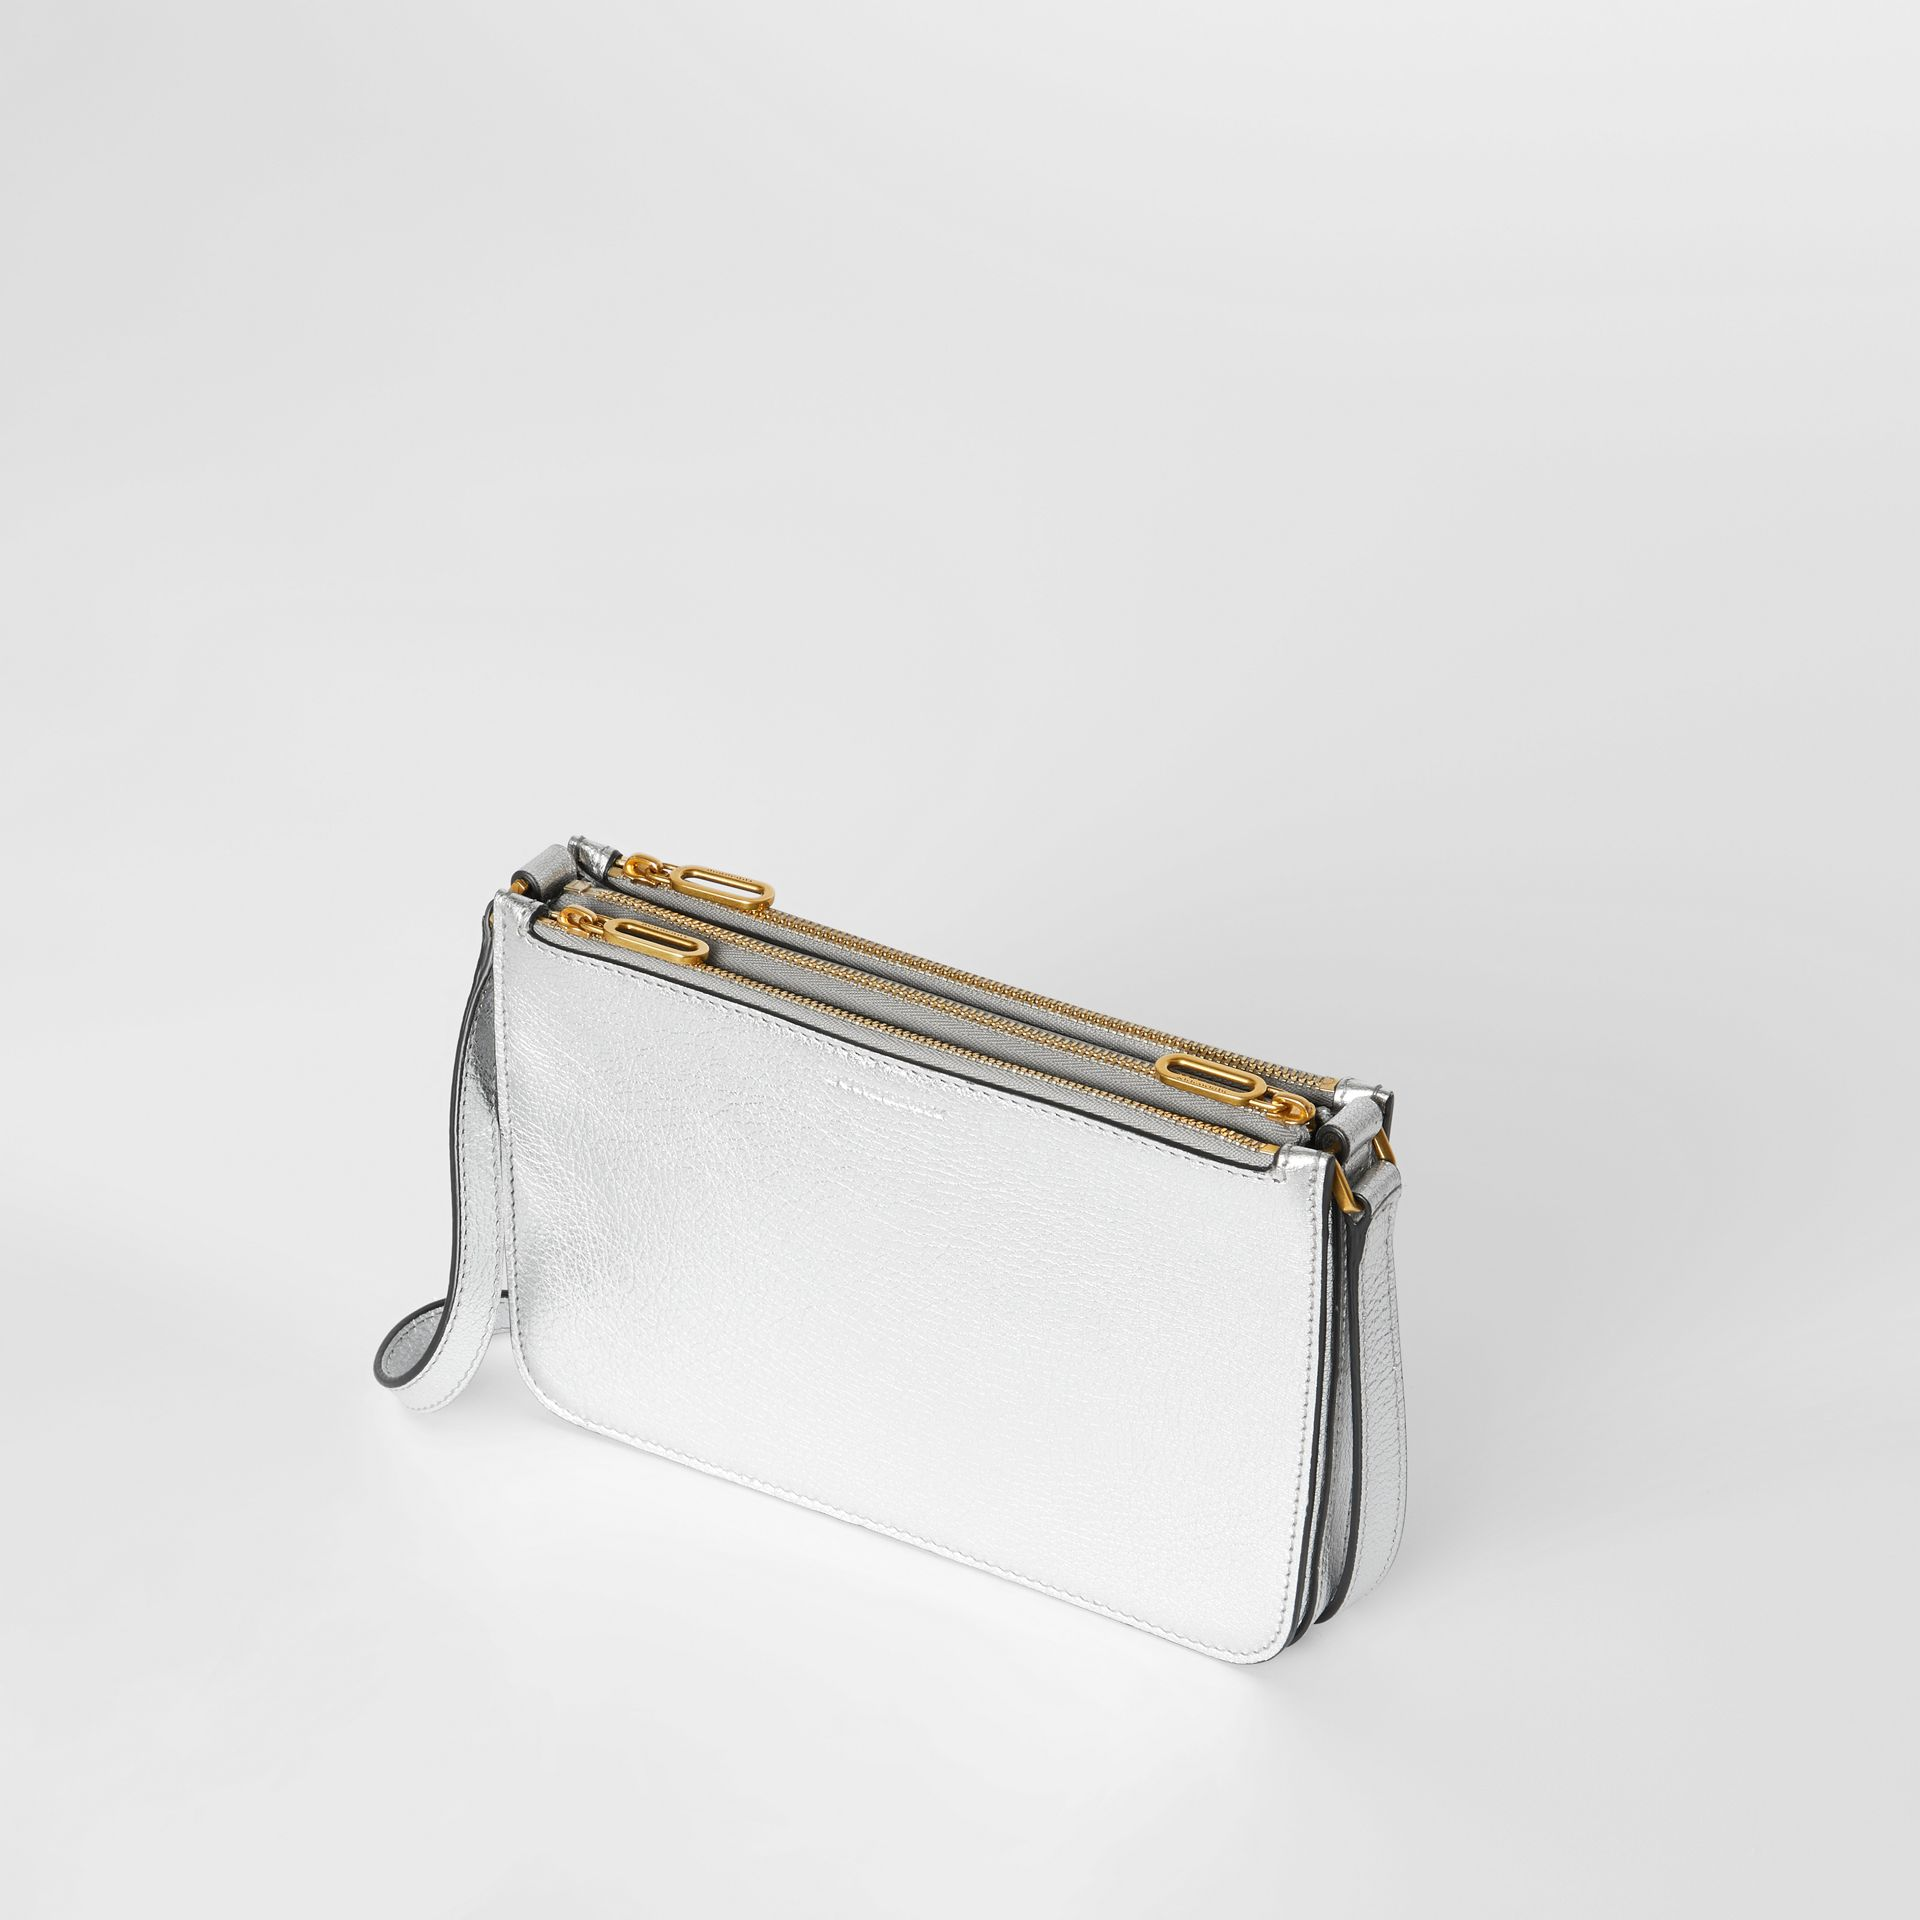 Triple Zip Metallic Leather Crossbody Bag in Silver - Women | Burberry Canada - gallery image 4